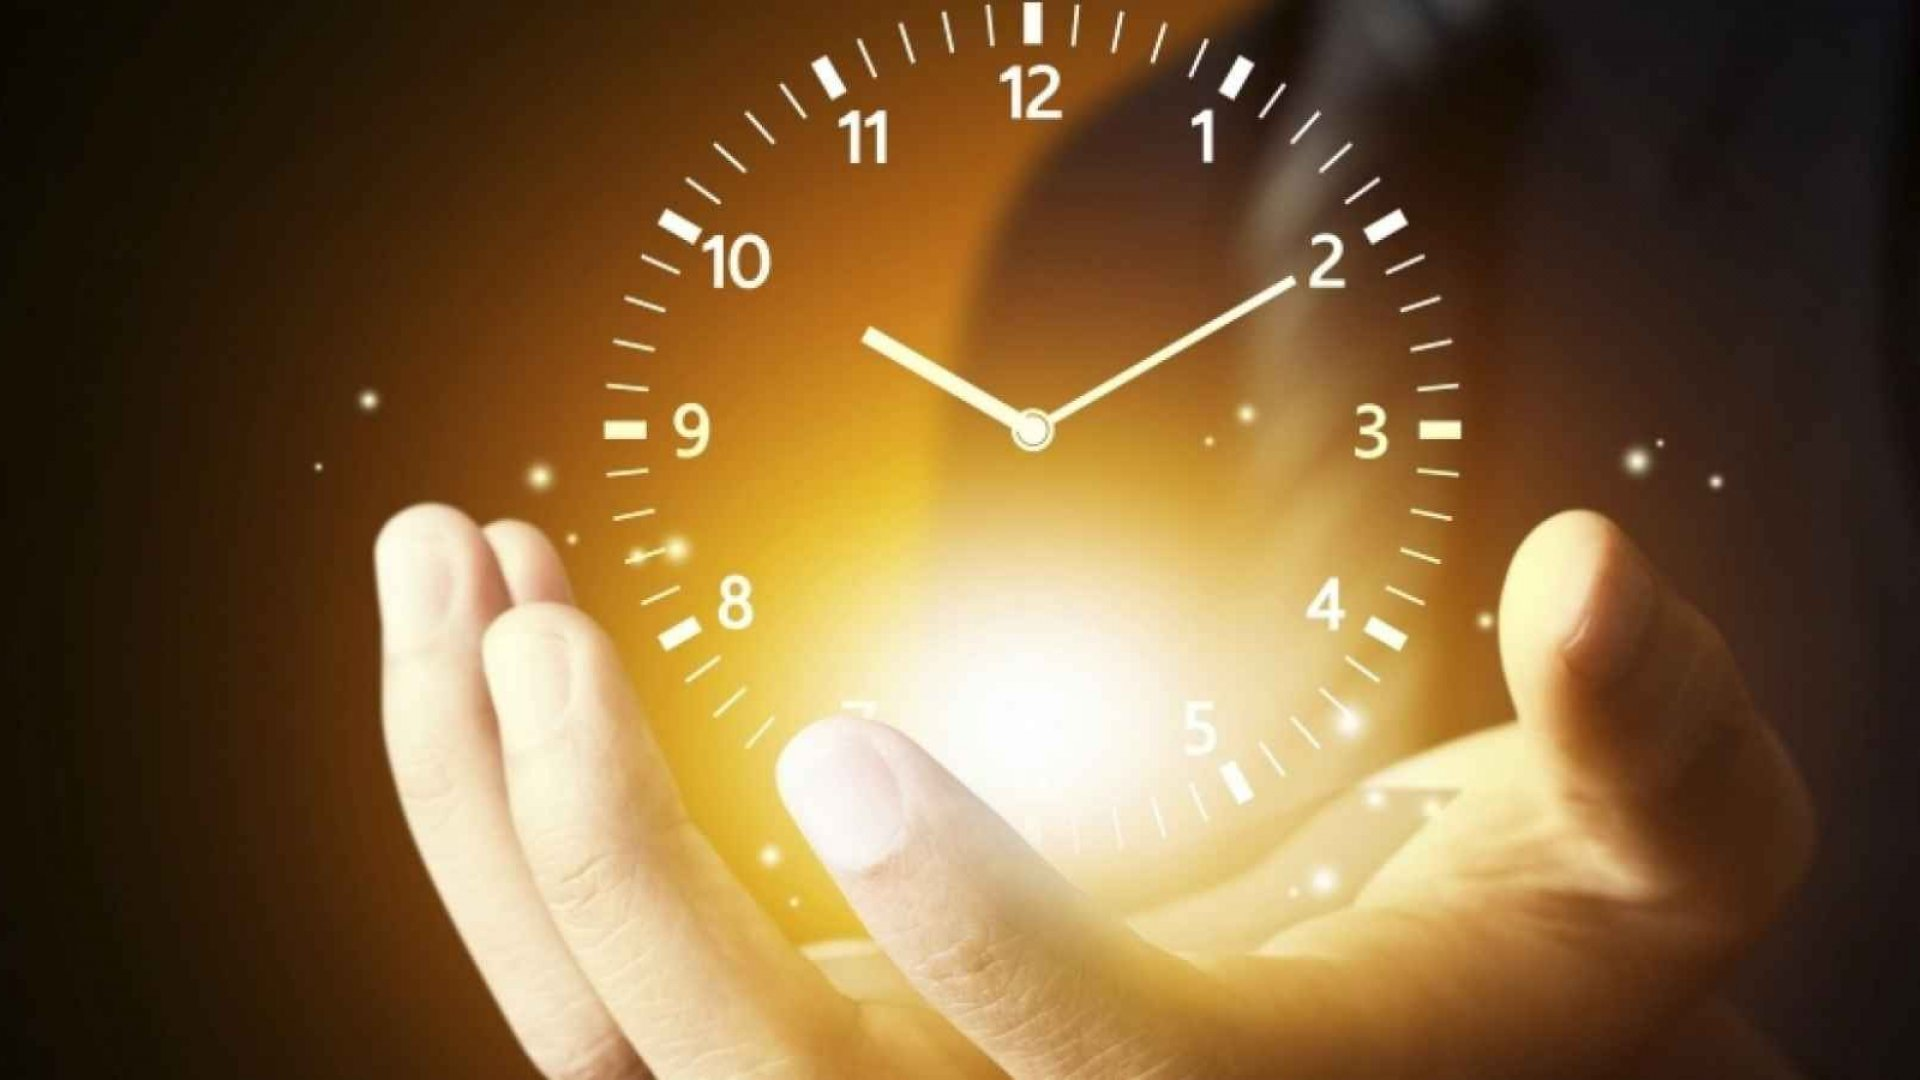 7 Ways to Gain the Most Value From Your Time